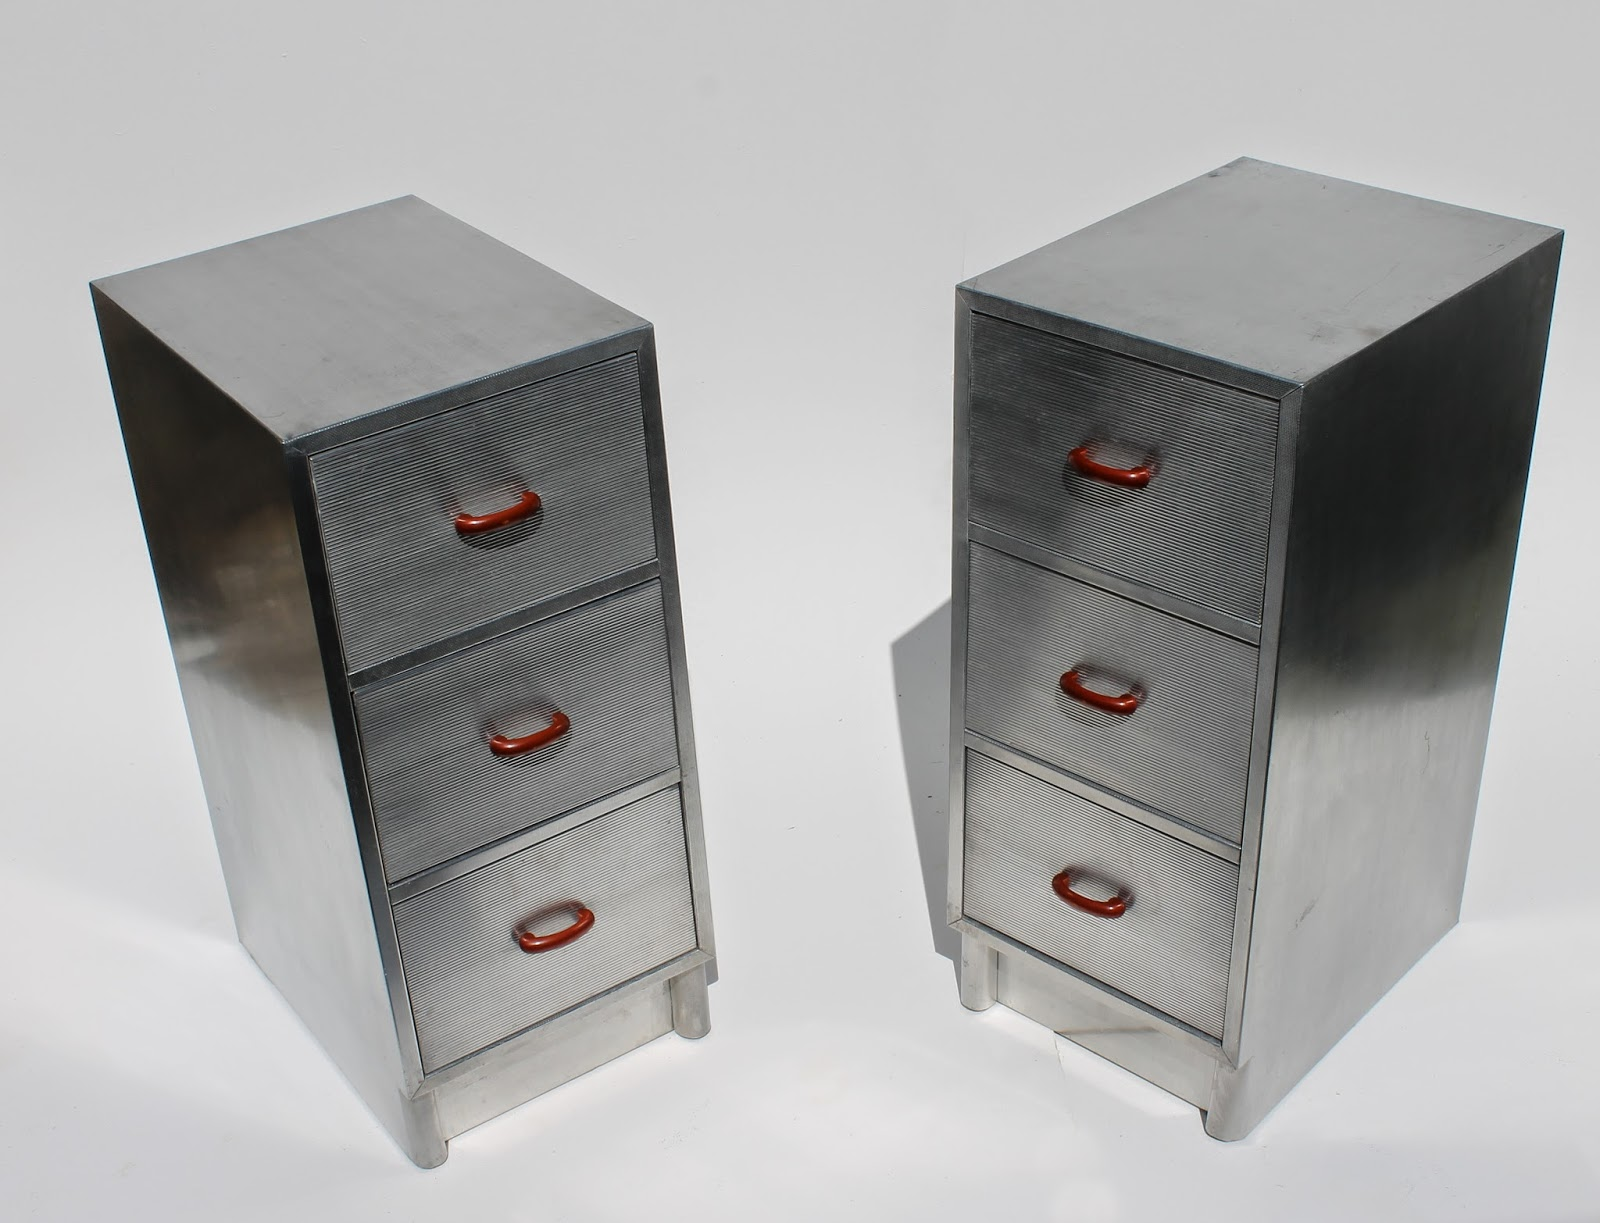 Industrial Aluminium Deco Style Dressing Table By PB Cow